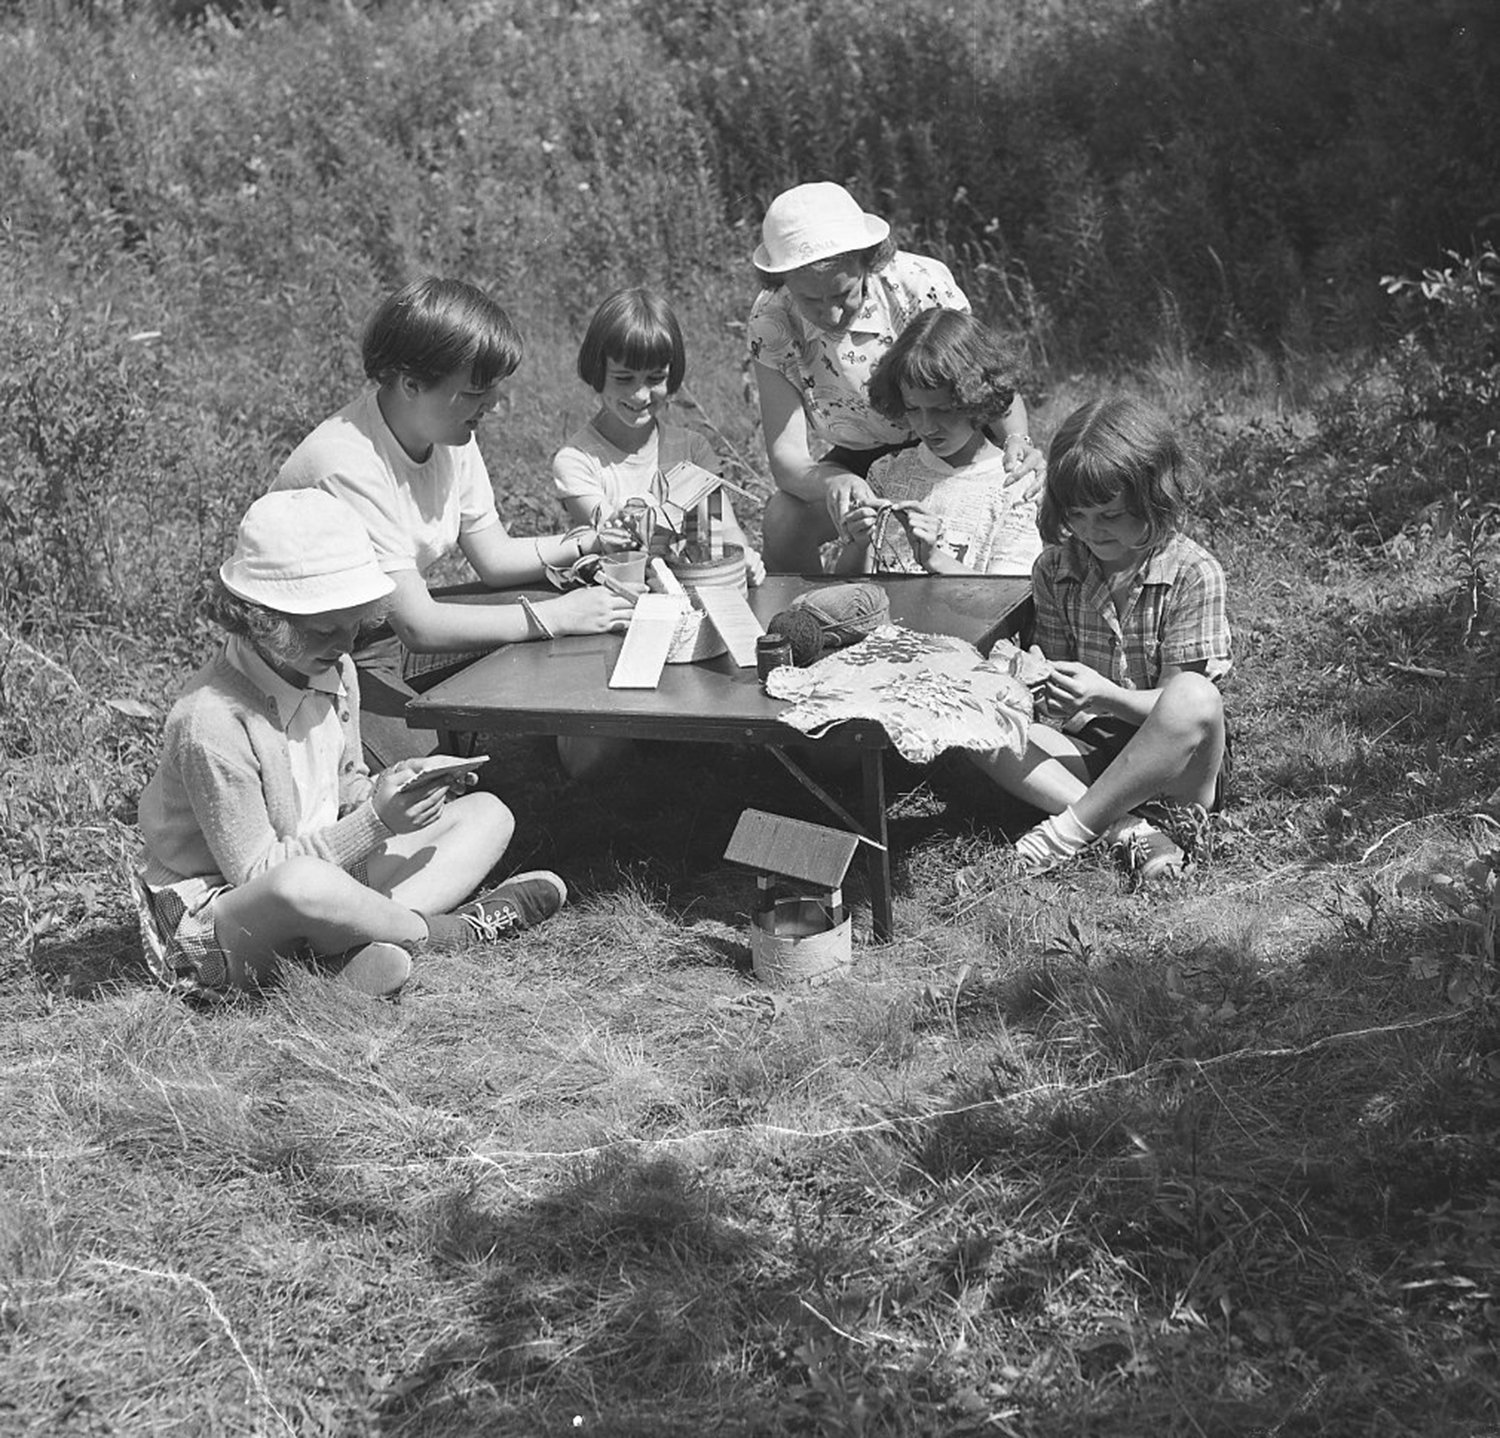 Girl Scouts (Brownies) collecting leaves, July 26, 1951. From the Portland Public Library archival collection of Portland Press Herald, Maine Sunday Telegram and Evening Express photos.